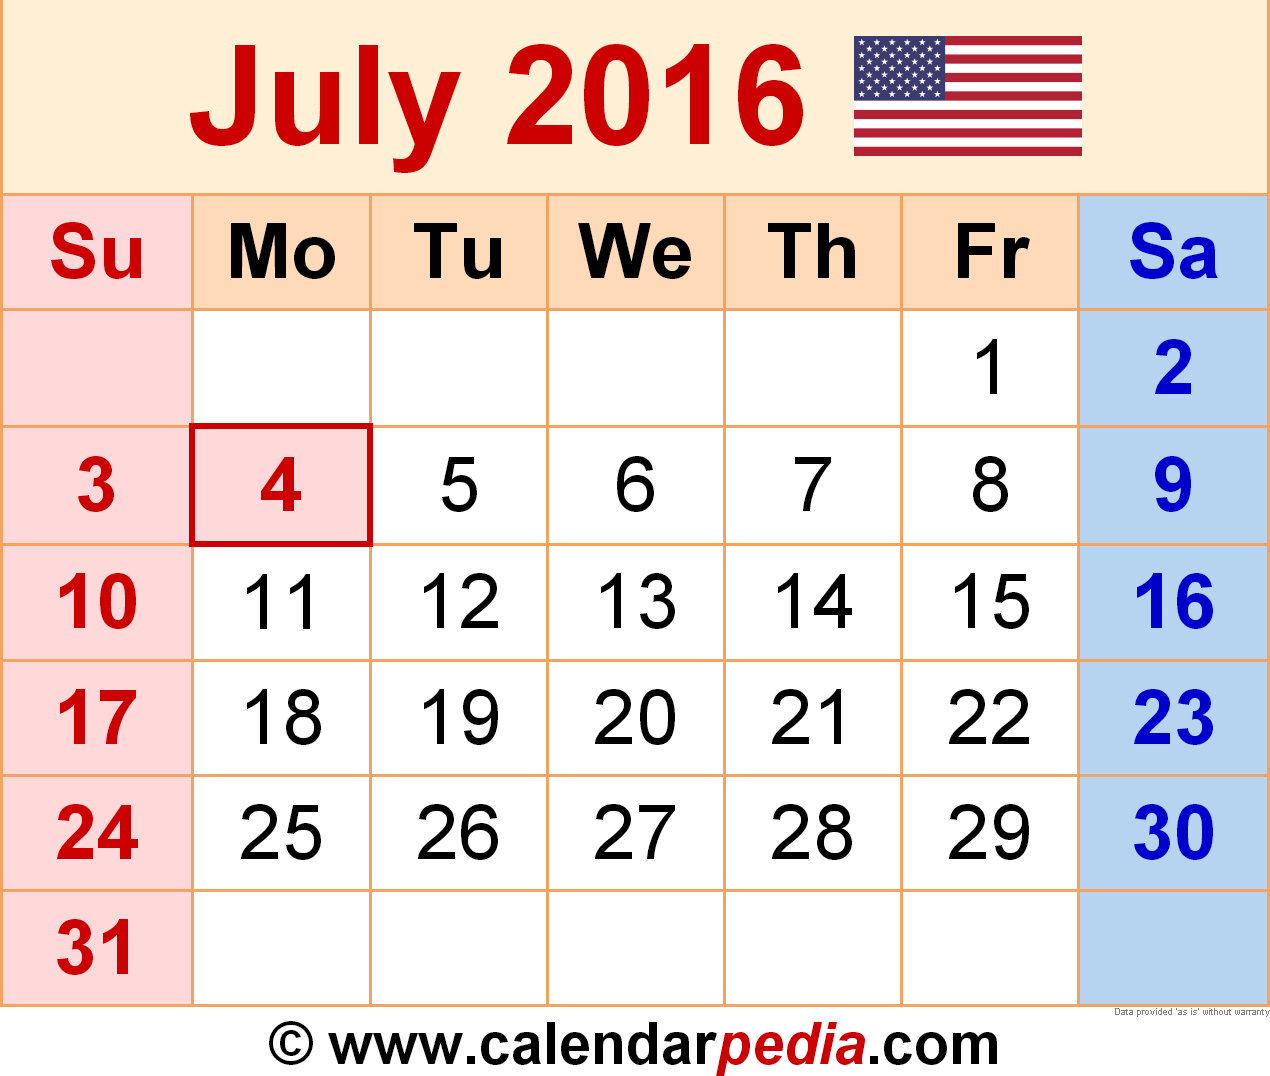 Year 2016 calendar time date other calendars description from lots of calendars yearly monthly and weekly calendars printable calendar templates for excelpdfword bankfederal holidays and more alramifo Image collections